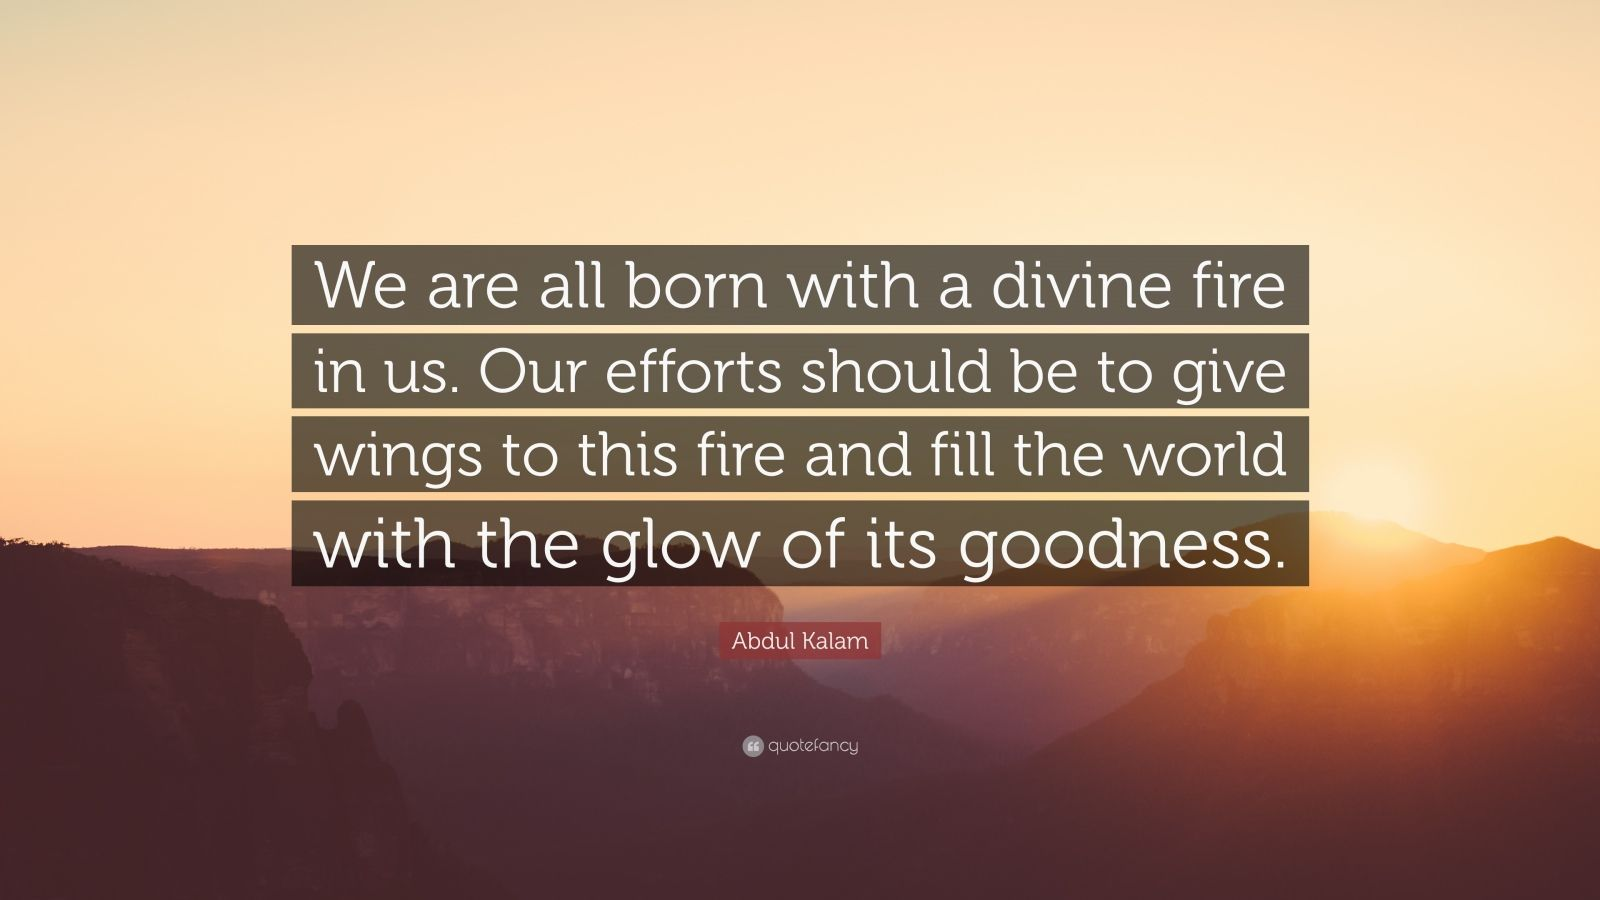 """Abdul Kalam Quote: """"We are all born with a divine fire in us. Our efforts should be to give wings to this fire and fill the world with the glow of its goodness."""""""